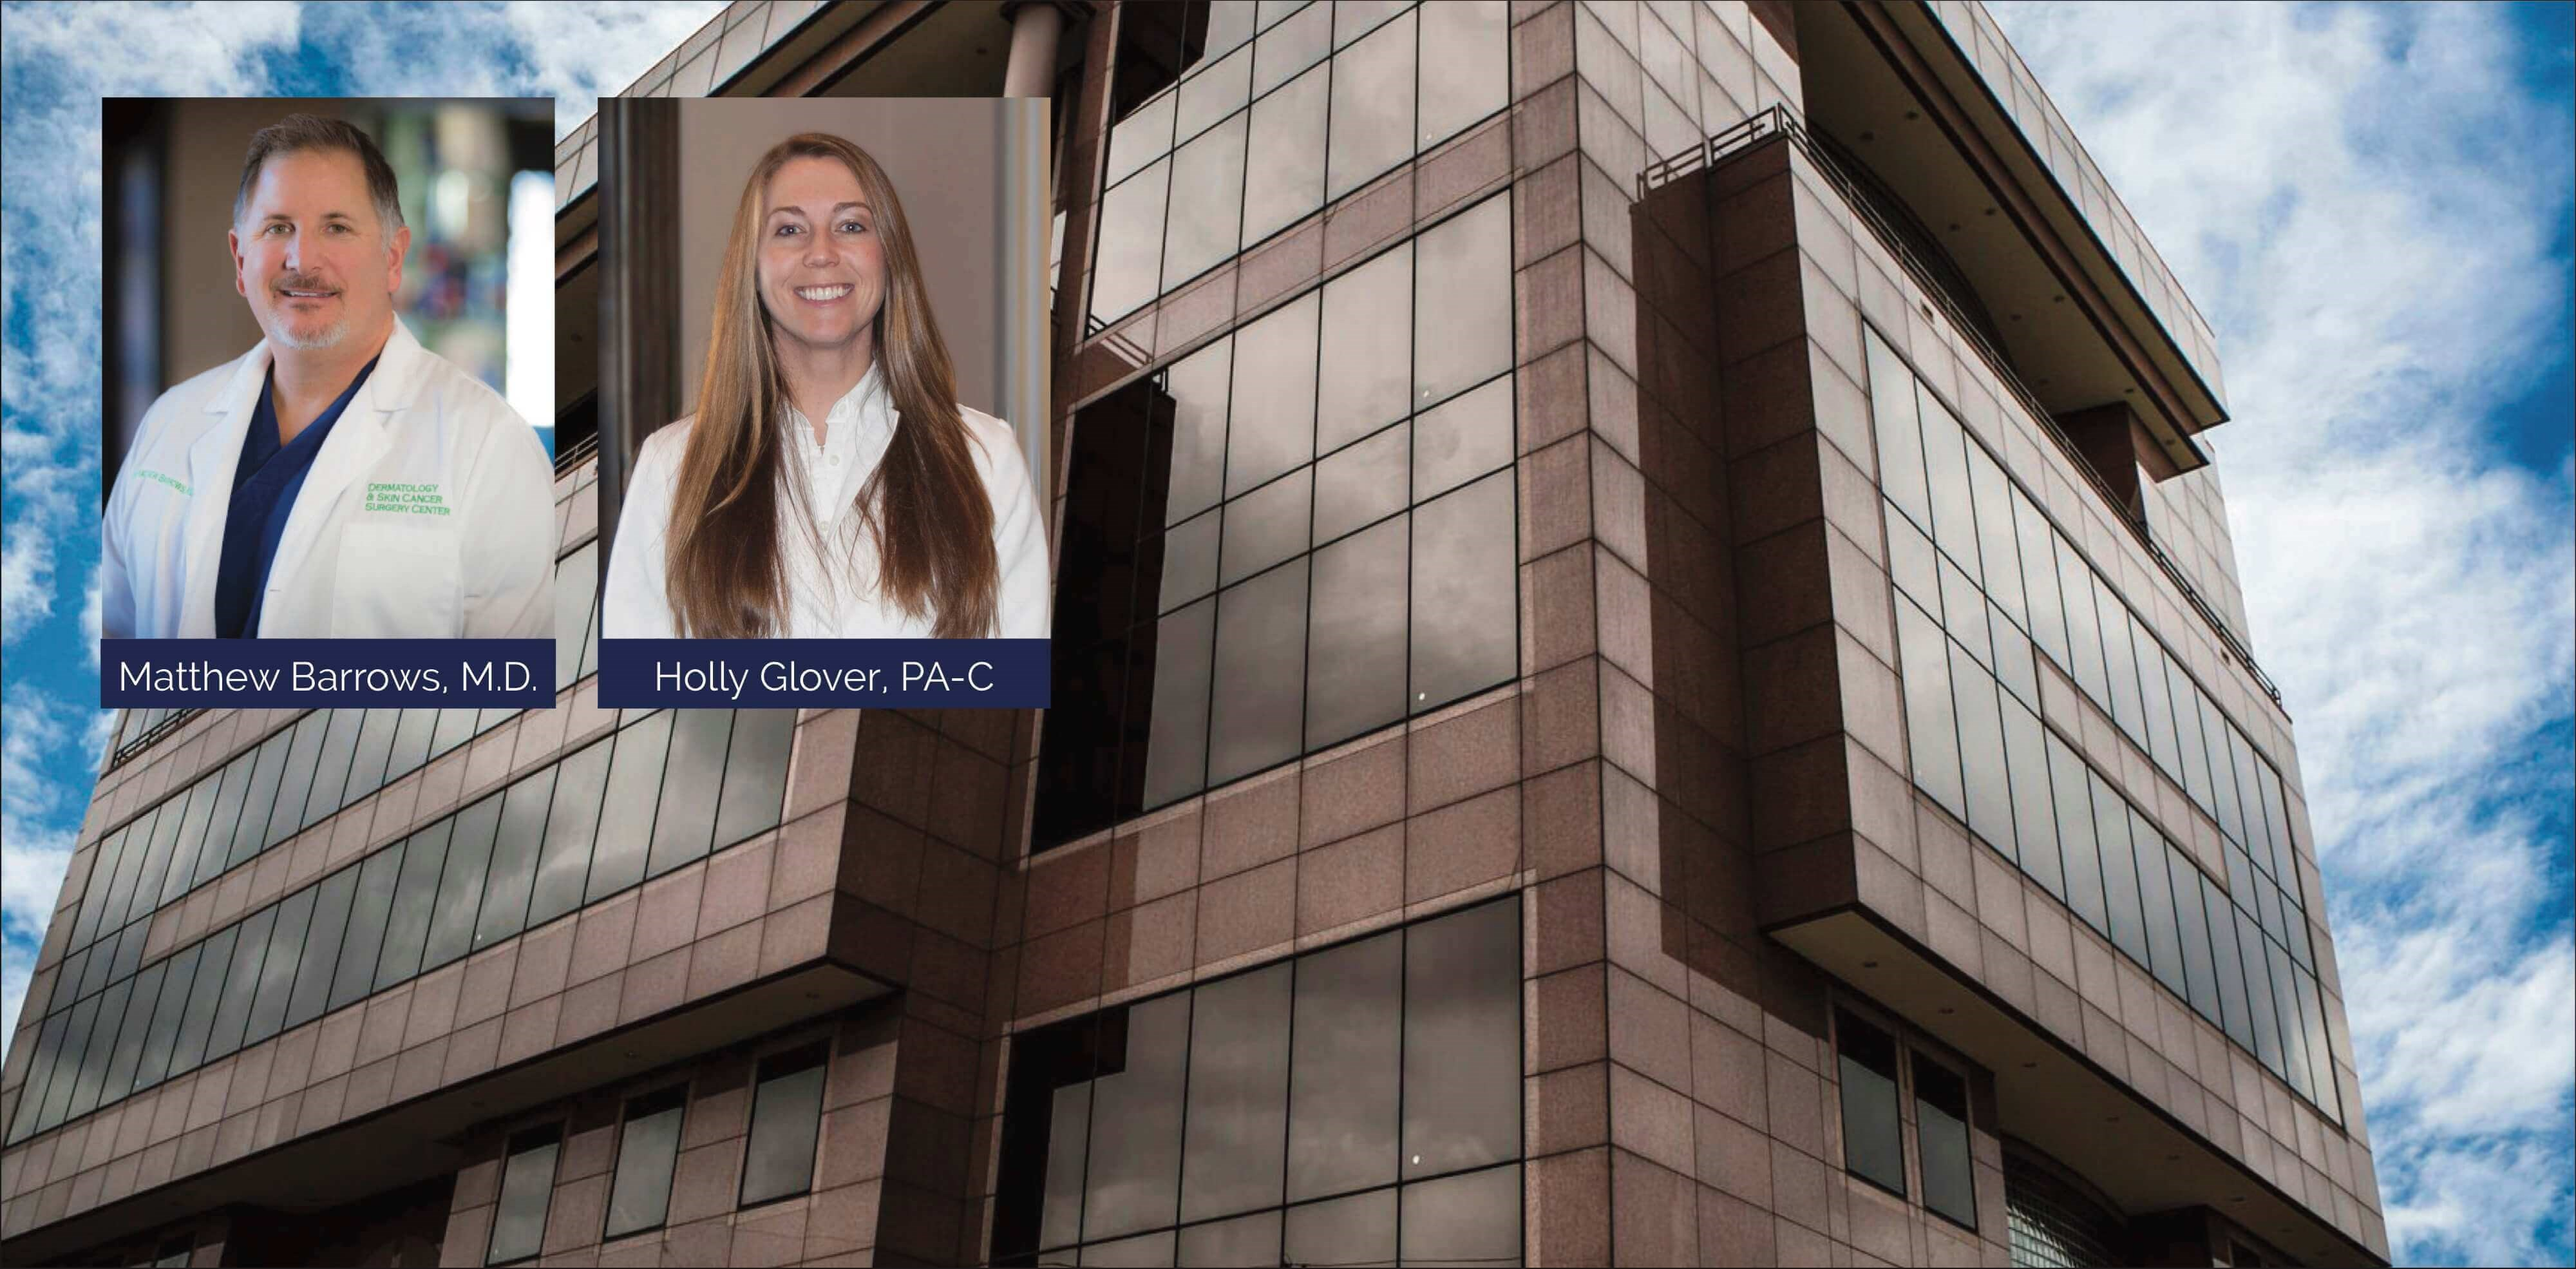 We're pleased to welcome Holly Glover, PA-C - Holly is now seeing patients at our Dallas & McKinney locations. We are proud to have her part of the Dermatology & Skin Cancer Surgery Center team.